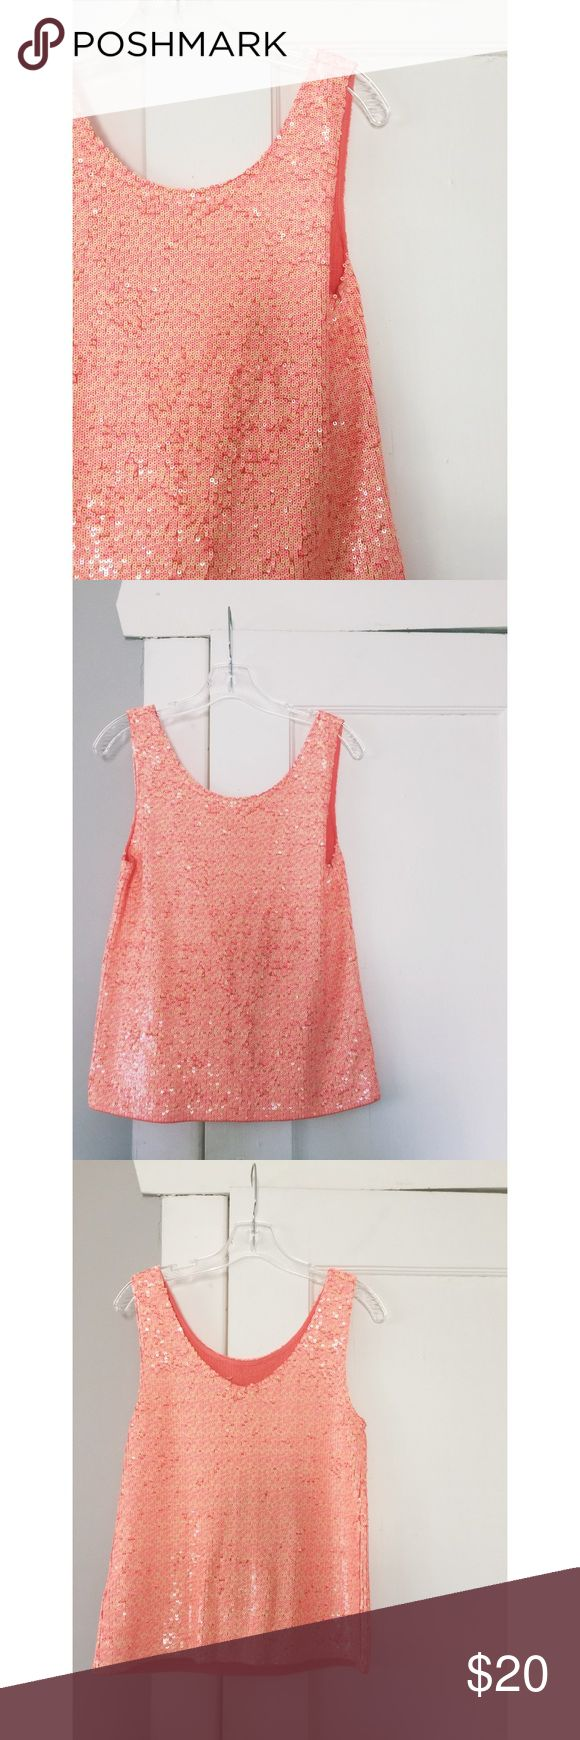 J.Crew Sequin Tank Top J.Crew Sequin Tank Top.  New with tags.  $128 retail.  Perfect condition.  Women's size XS. J. Crew Tops Tank Tops